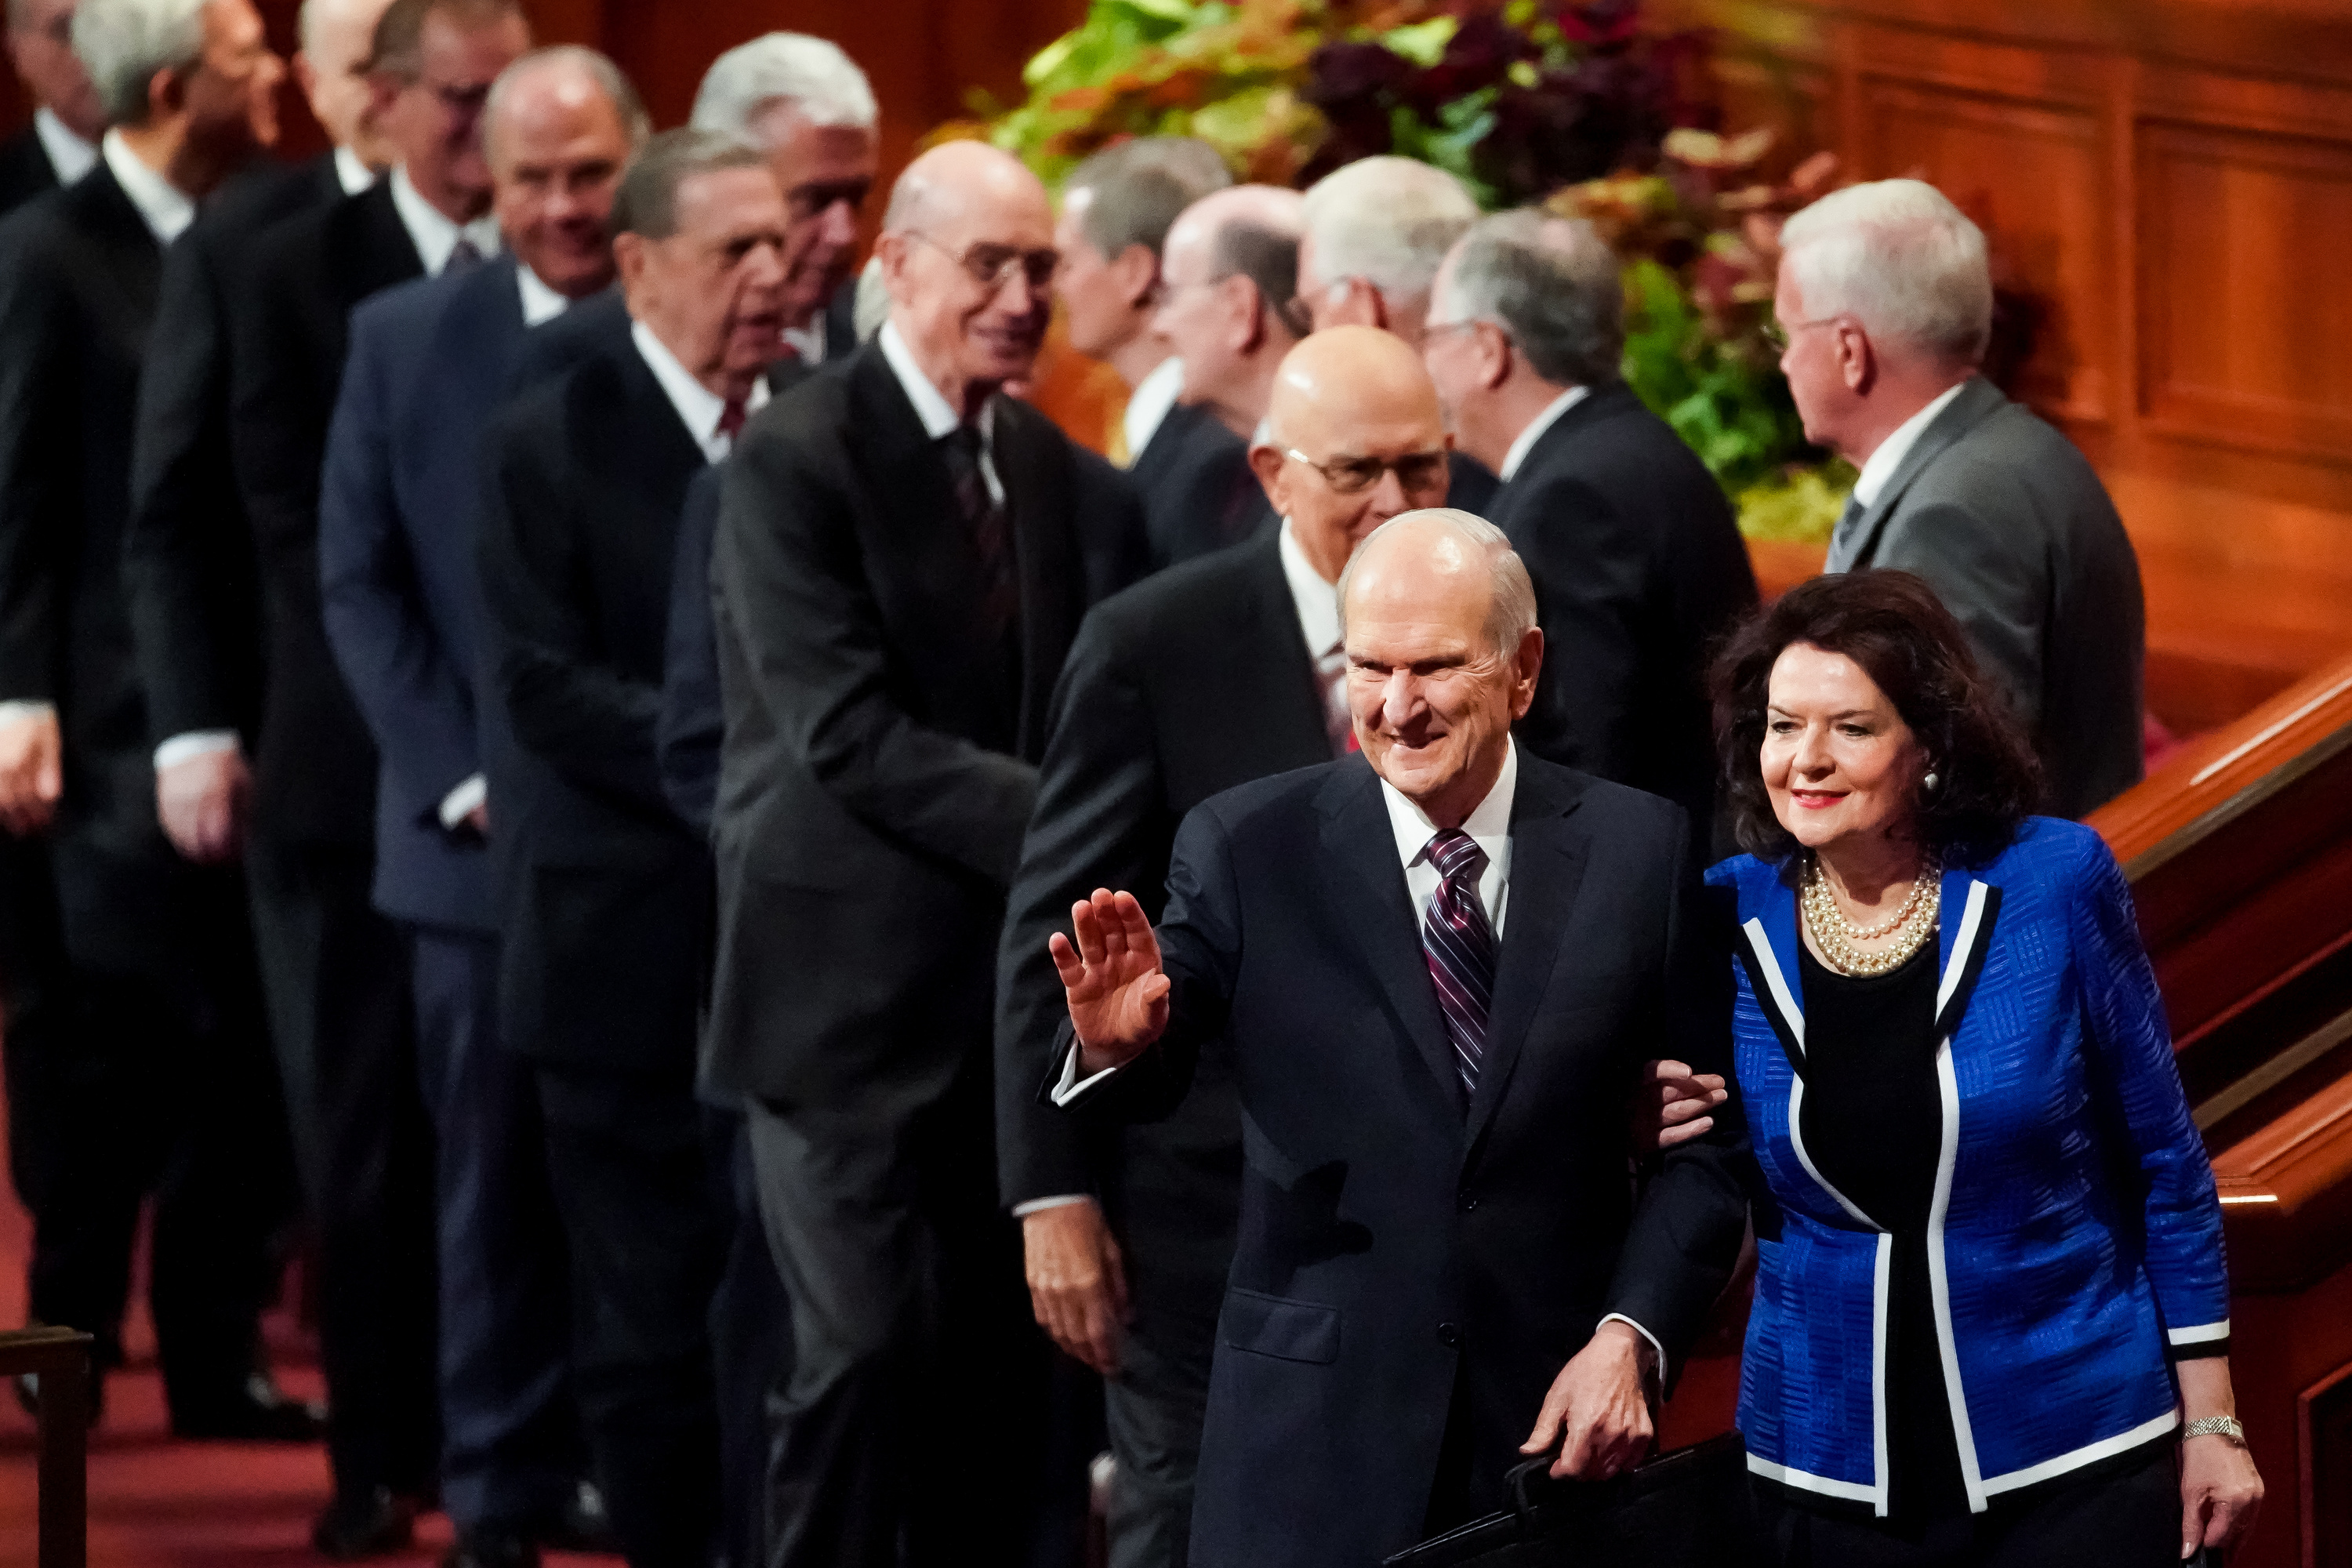 President Russell M. Nelson waves as he and his wife, Sister Wendy Nelson, exit at the conclusion of the Saturday morning session of the 189th Semiannual General Conference of The Church of Jesus Christ of Latter-day Saints at the Conference Center in Salt Lake City on Saturday, Oct. 5, 2019.